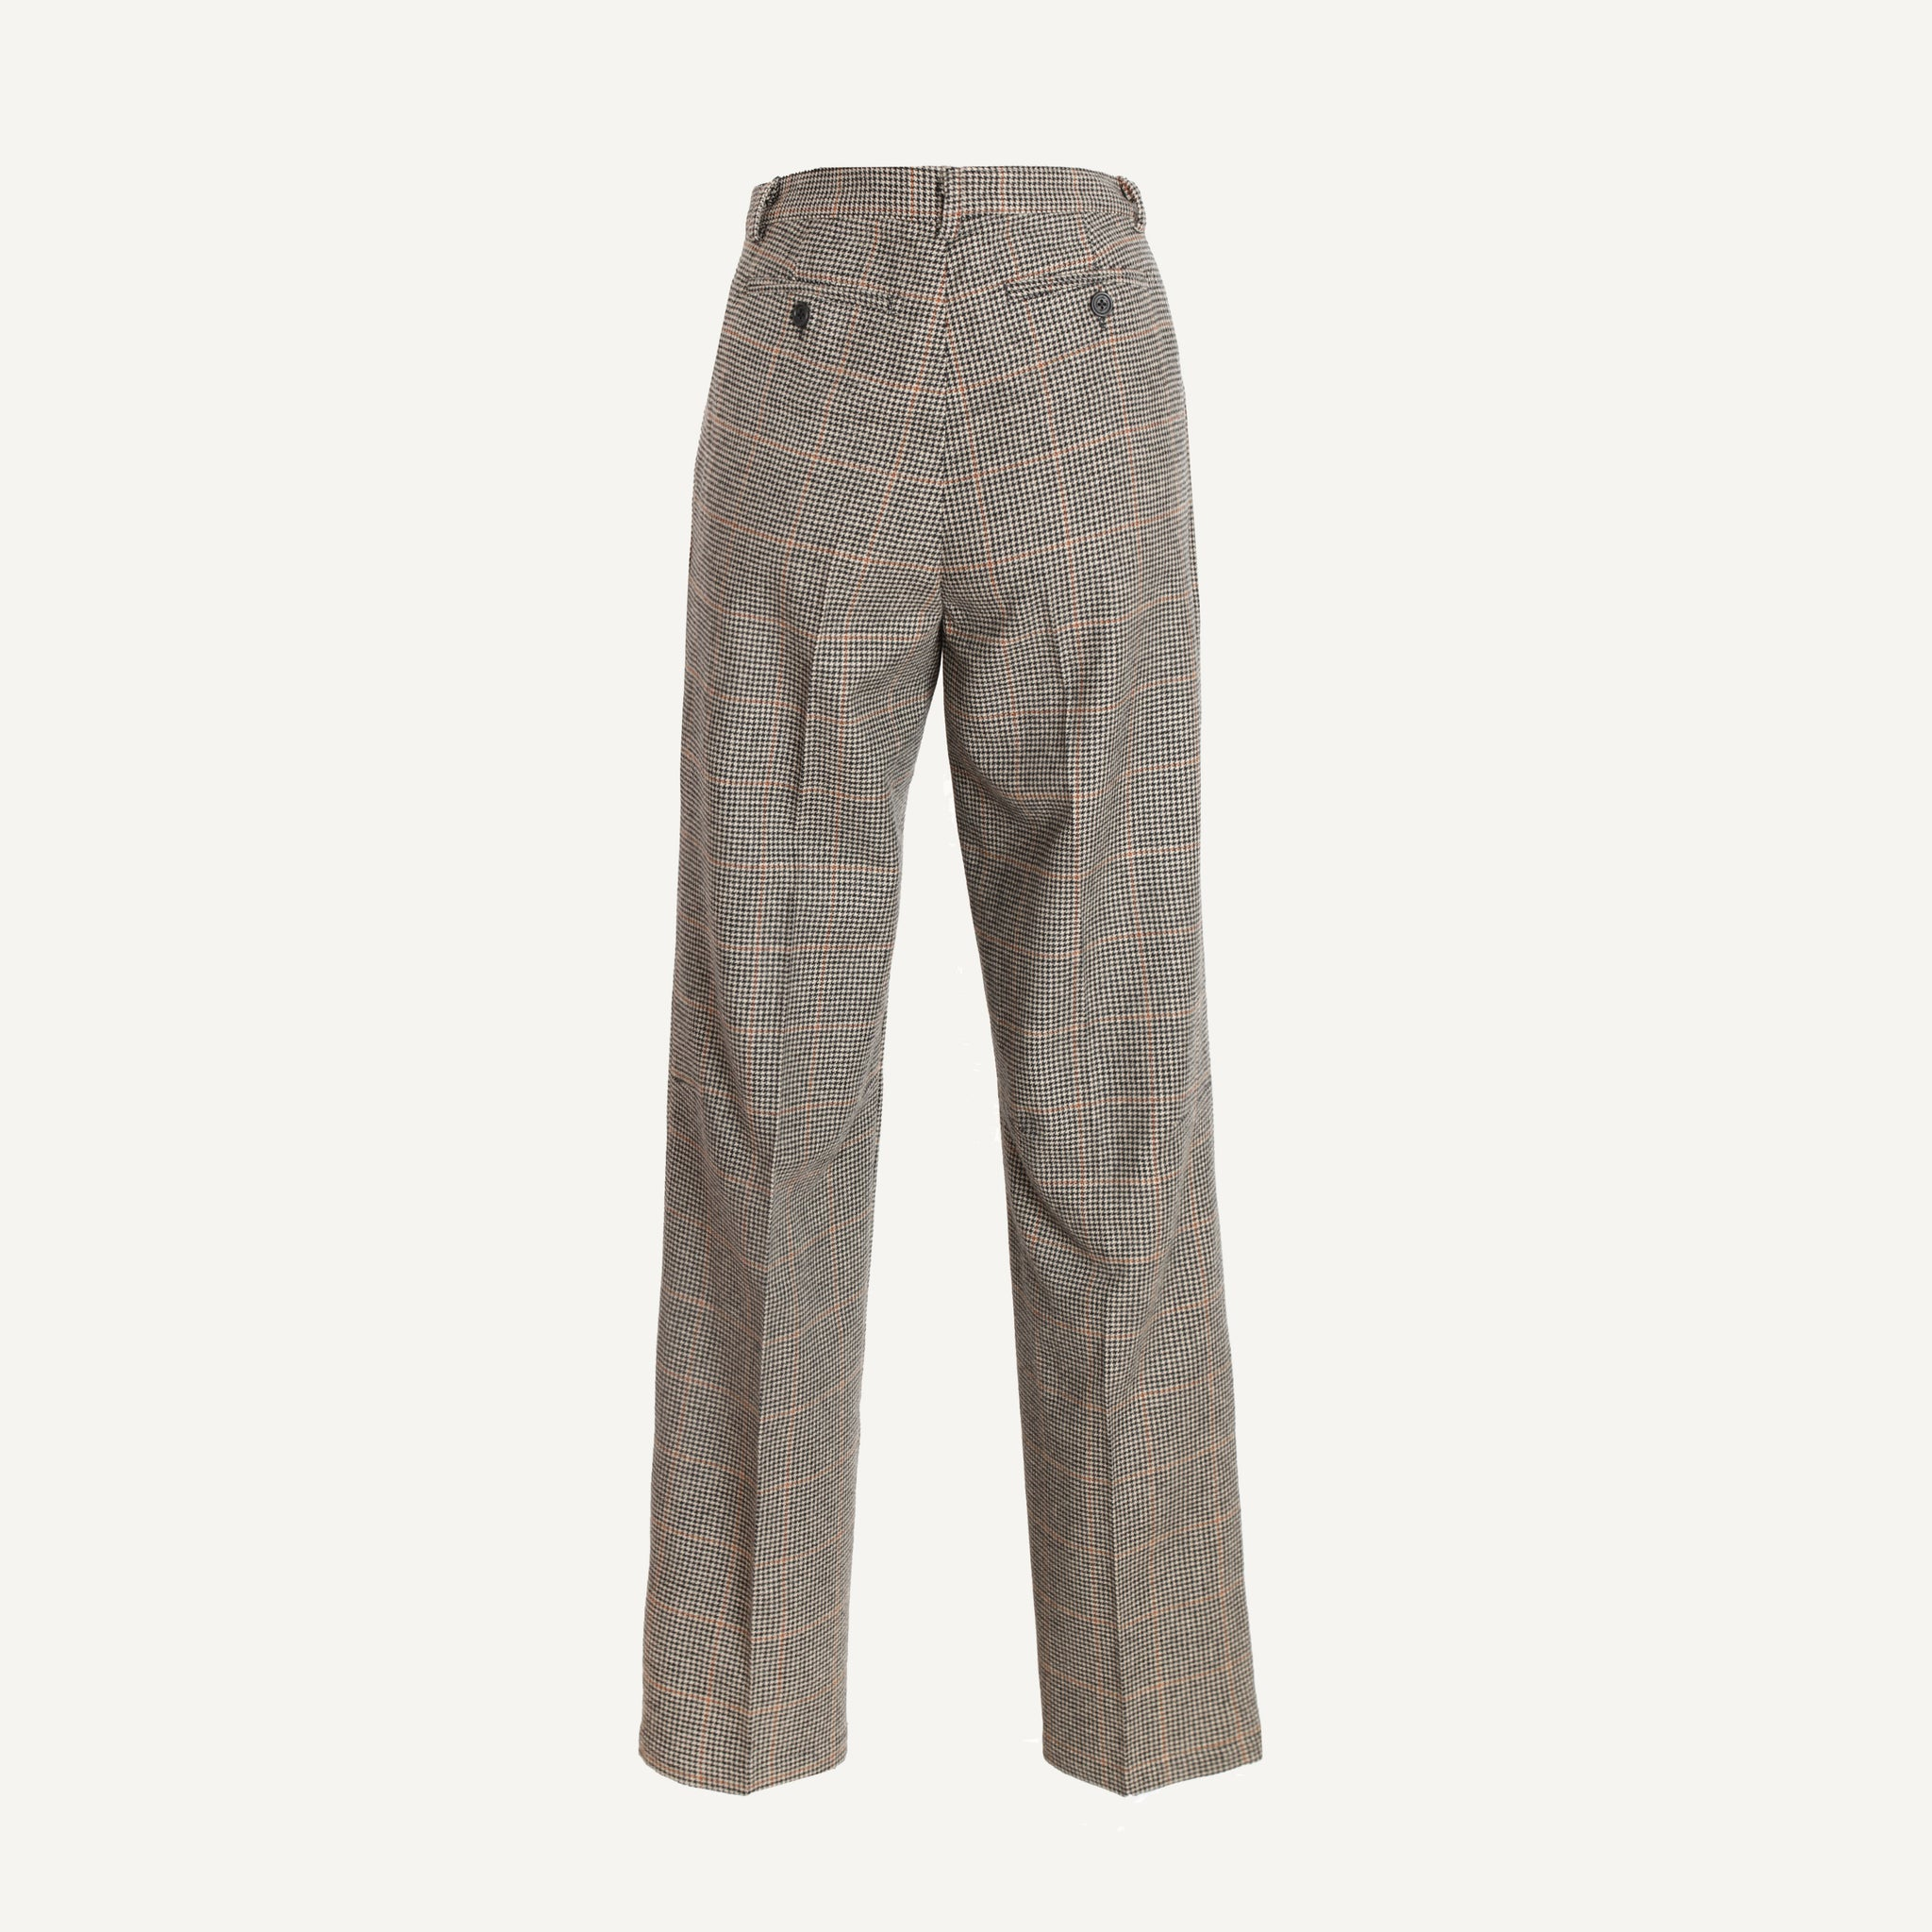 MASSIMO ALBA PLEATED TROUSERS